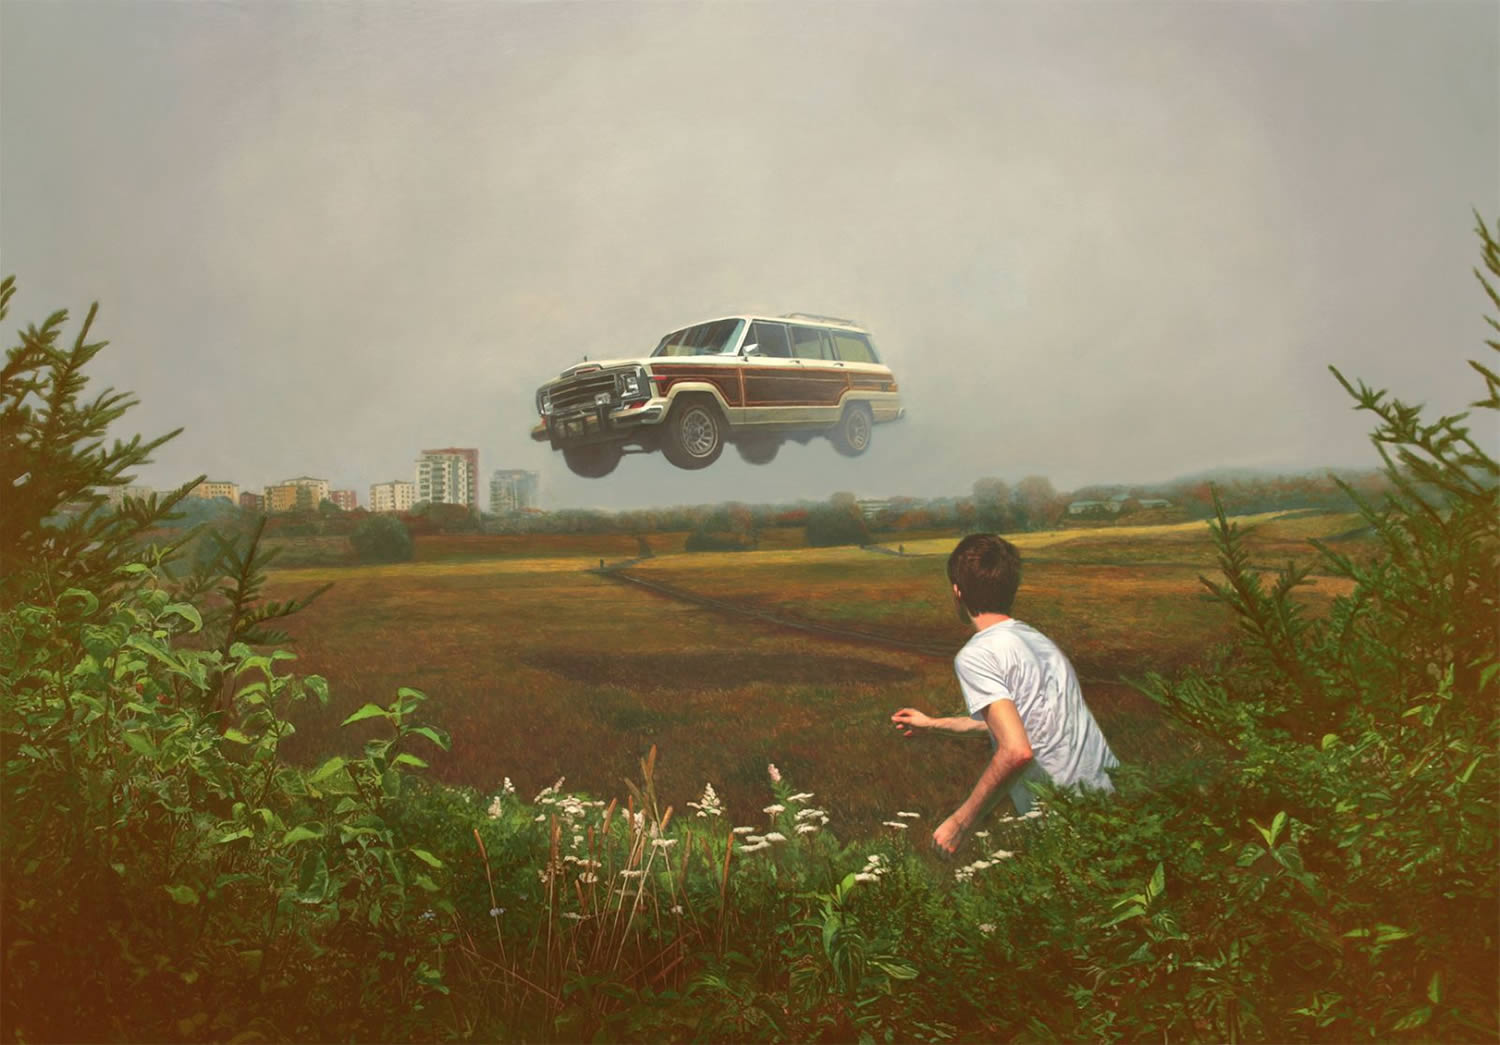 jeep flying in midair, over a field, by alex roulette